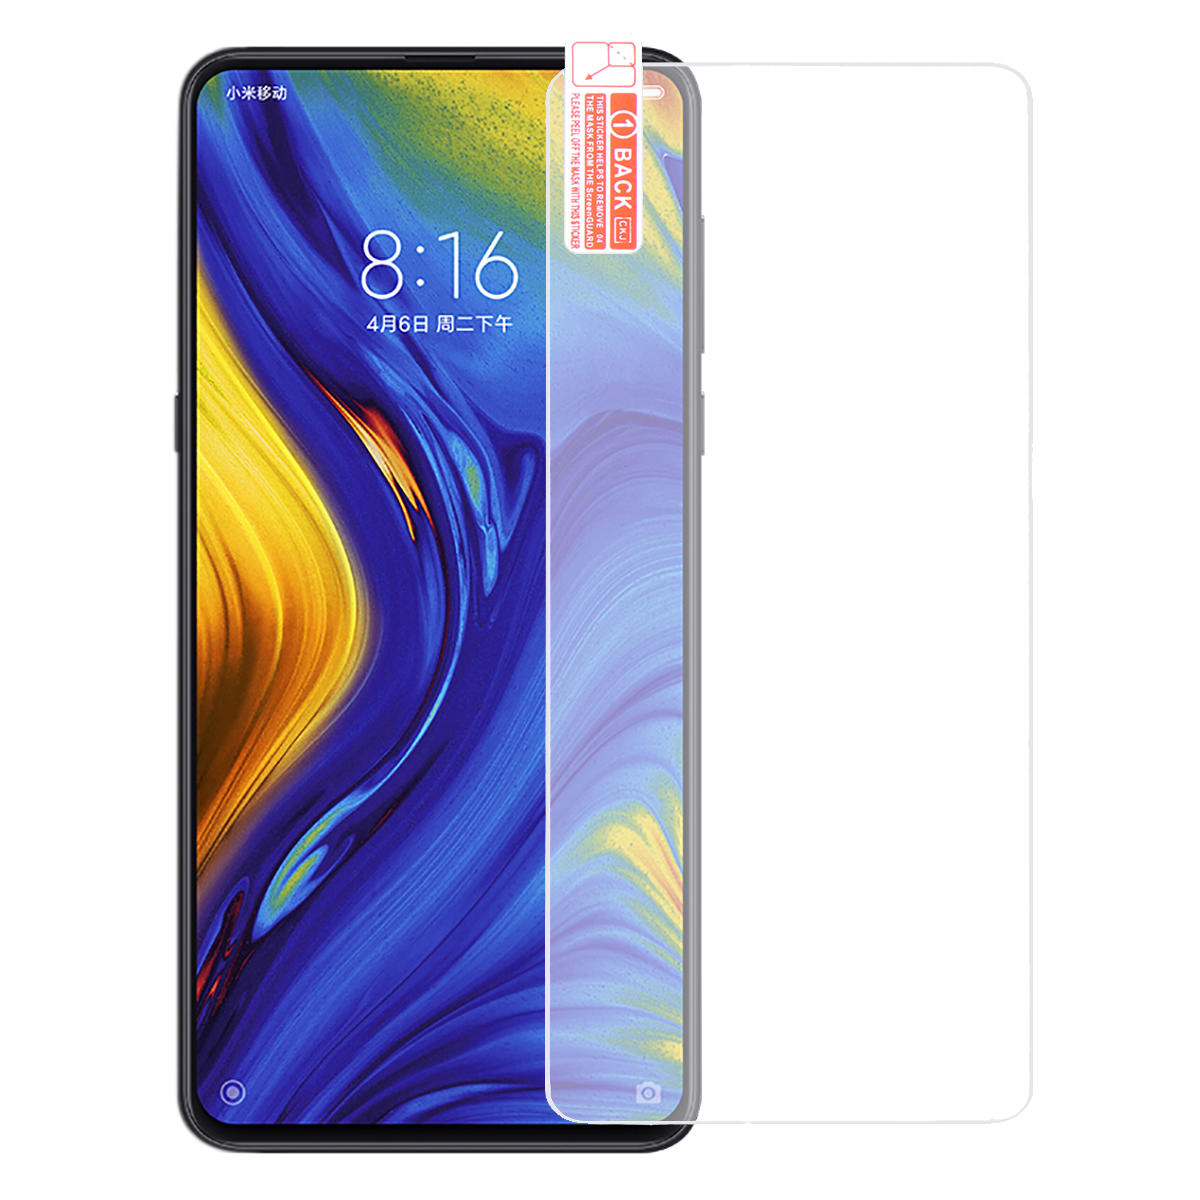 Bakeey™ Anti-explosion Anti-scratch Tempered Glass Screen Protector for Xiaomi Mi MIX 3